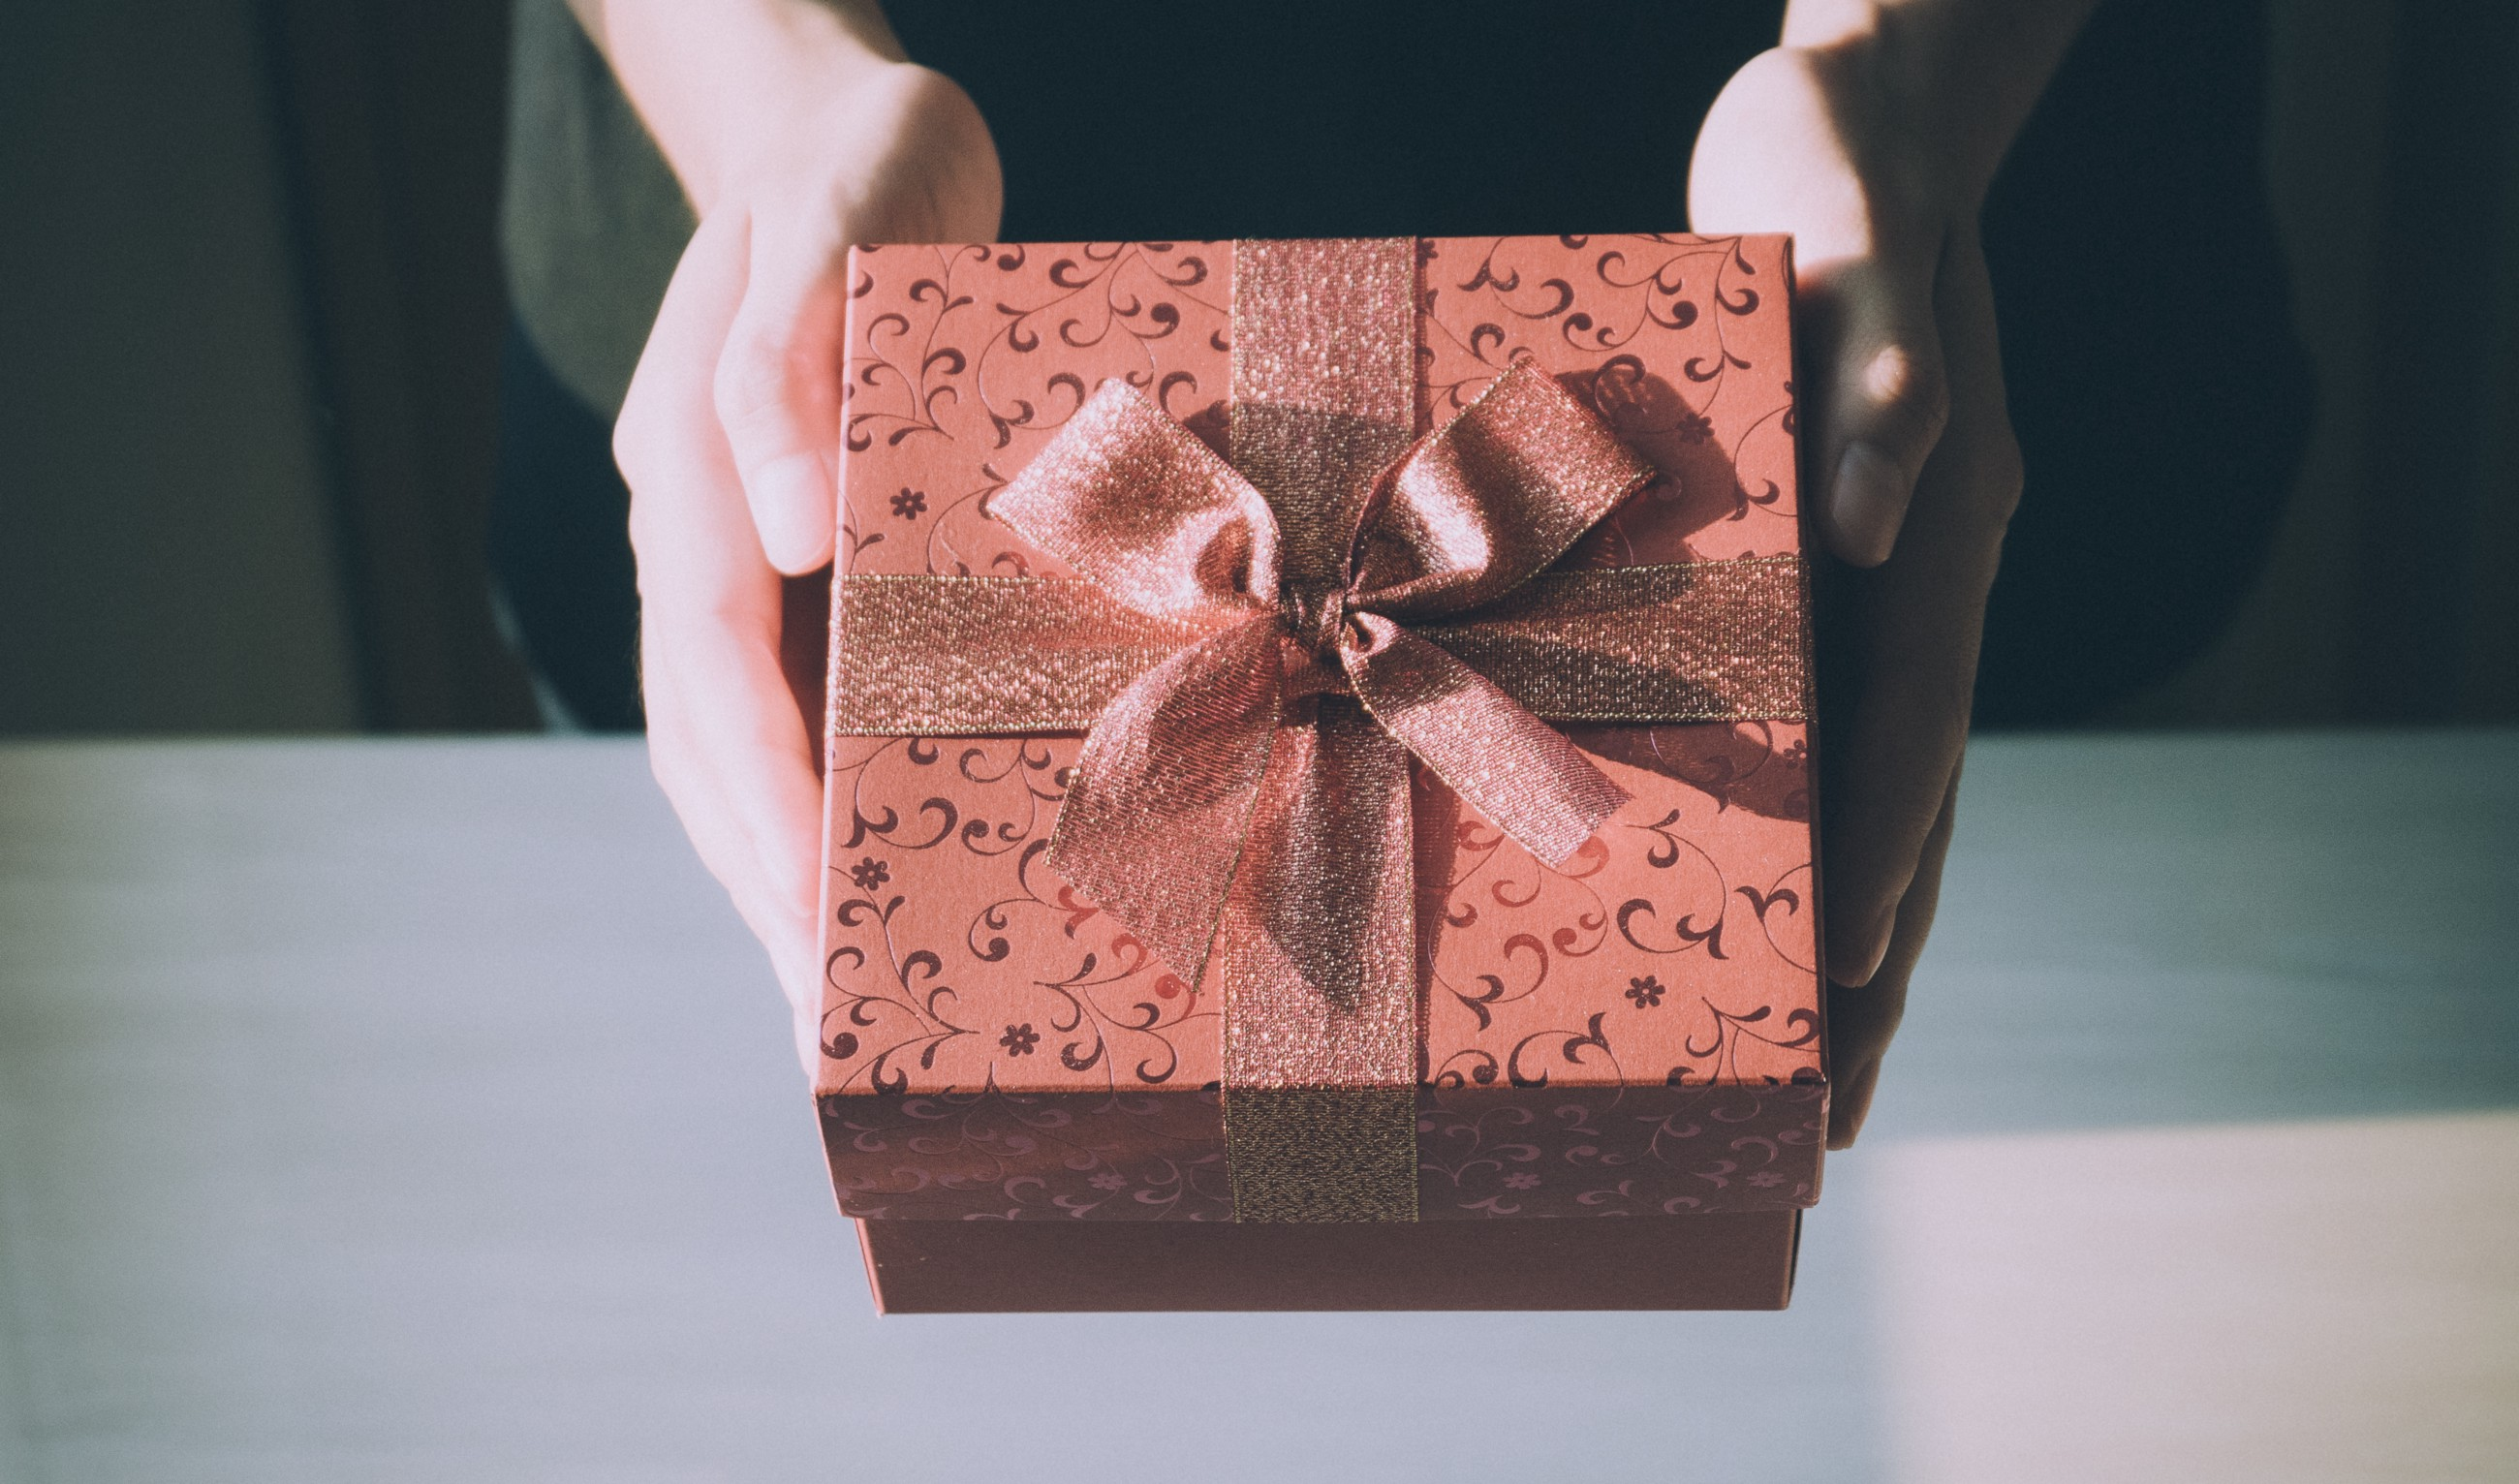 8e3cef4ce6f The most thoughtful gifts you can give on a tight budget